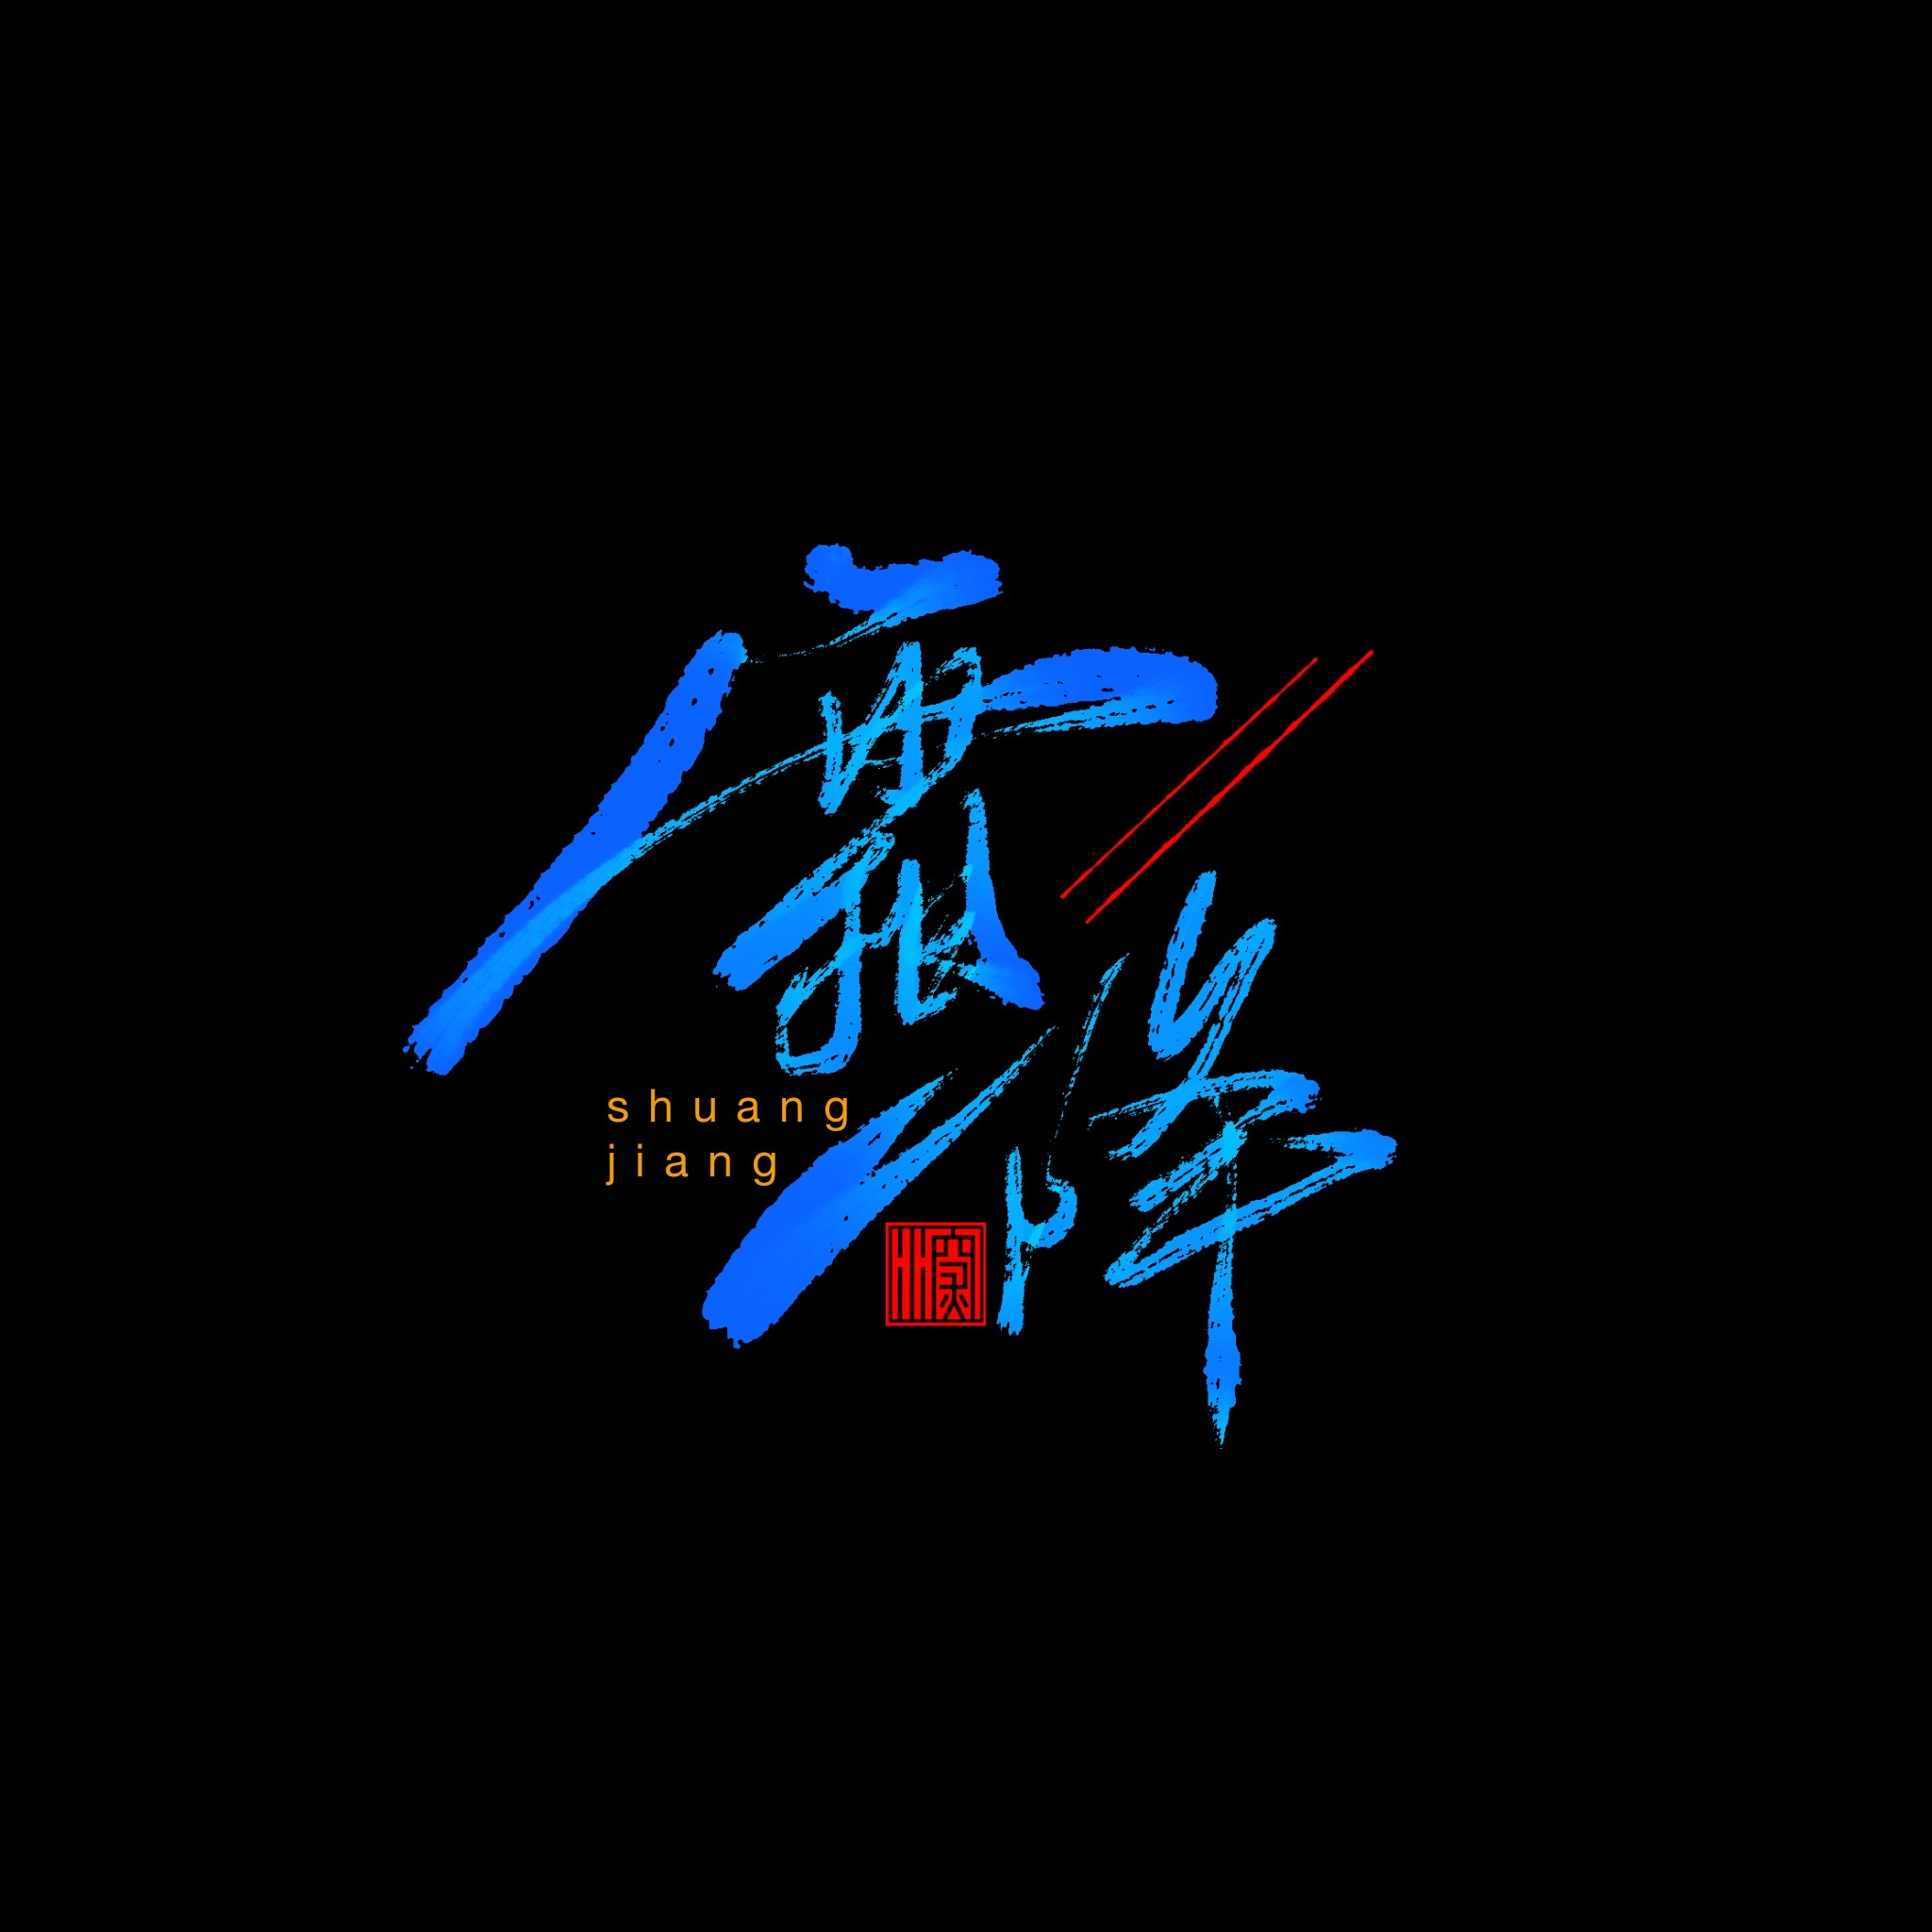 10P Collection of the latest Chinese font design schemes in 2021 #.308